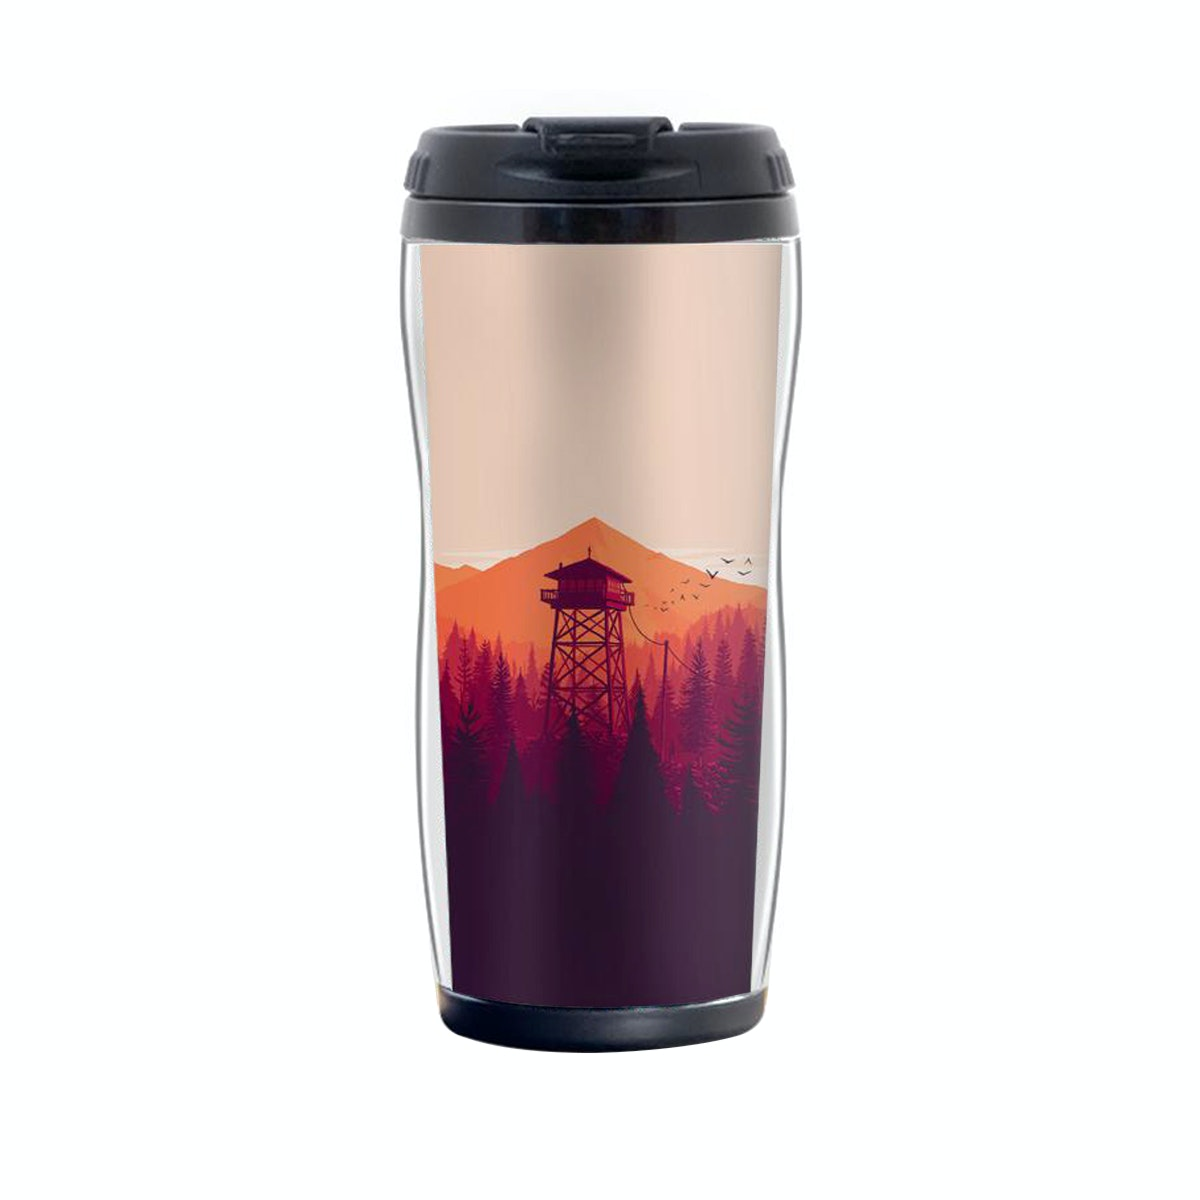 Tees Forest Patrol (Tumbler)